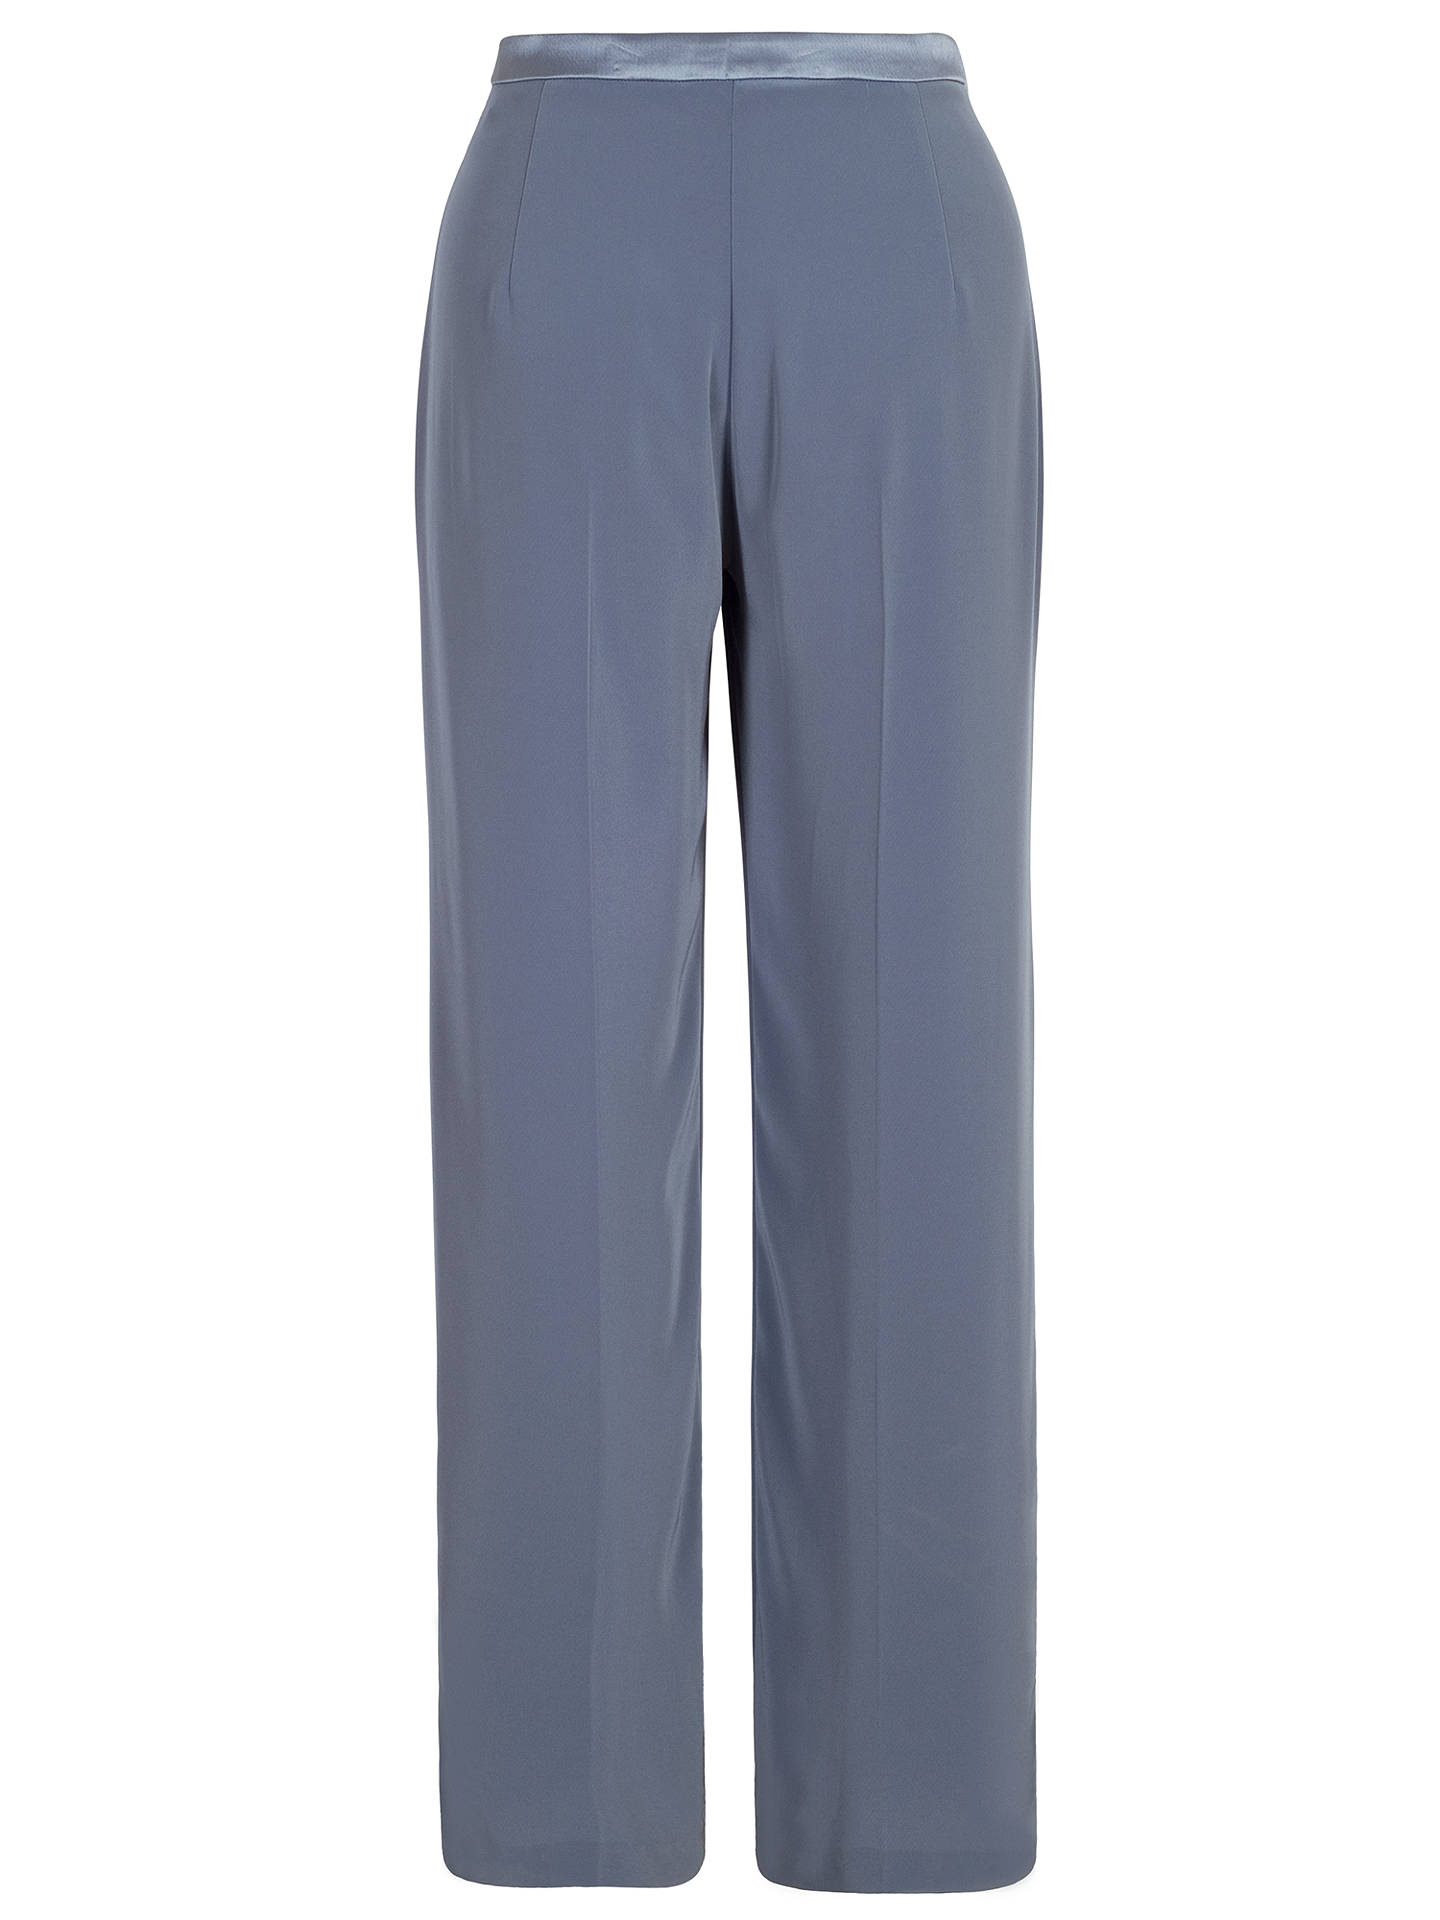 BuyChesca Top Stitched Waist Satin Back Trousers, Steel, 12 Online at johnlewis.com